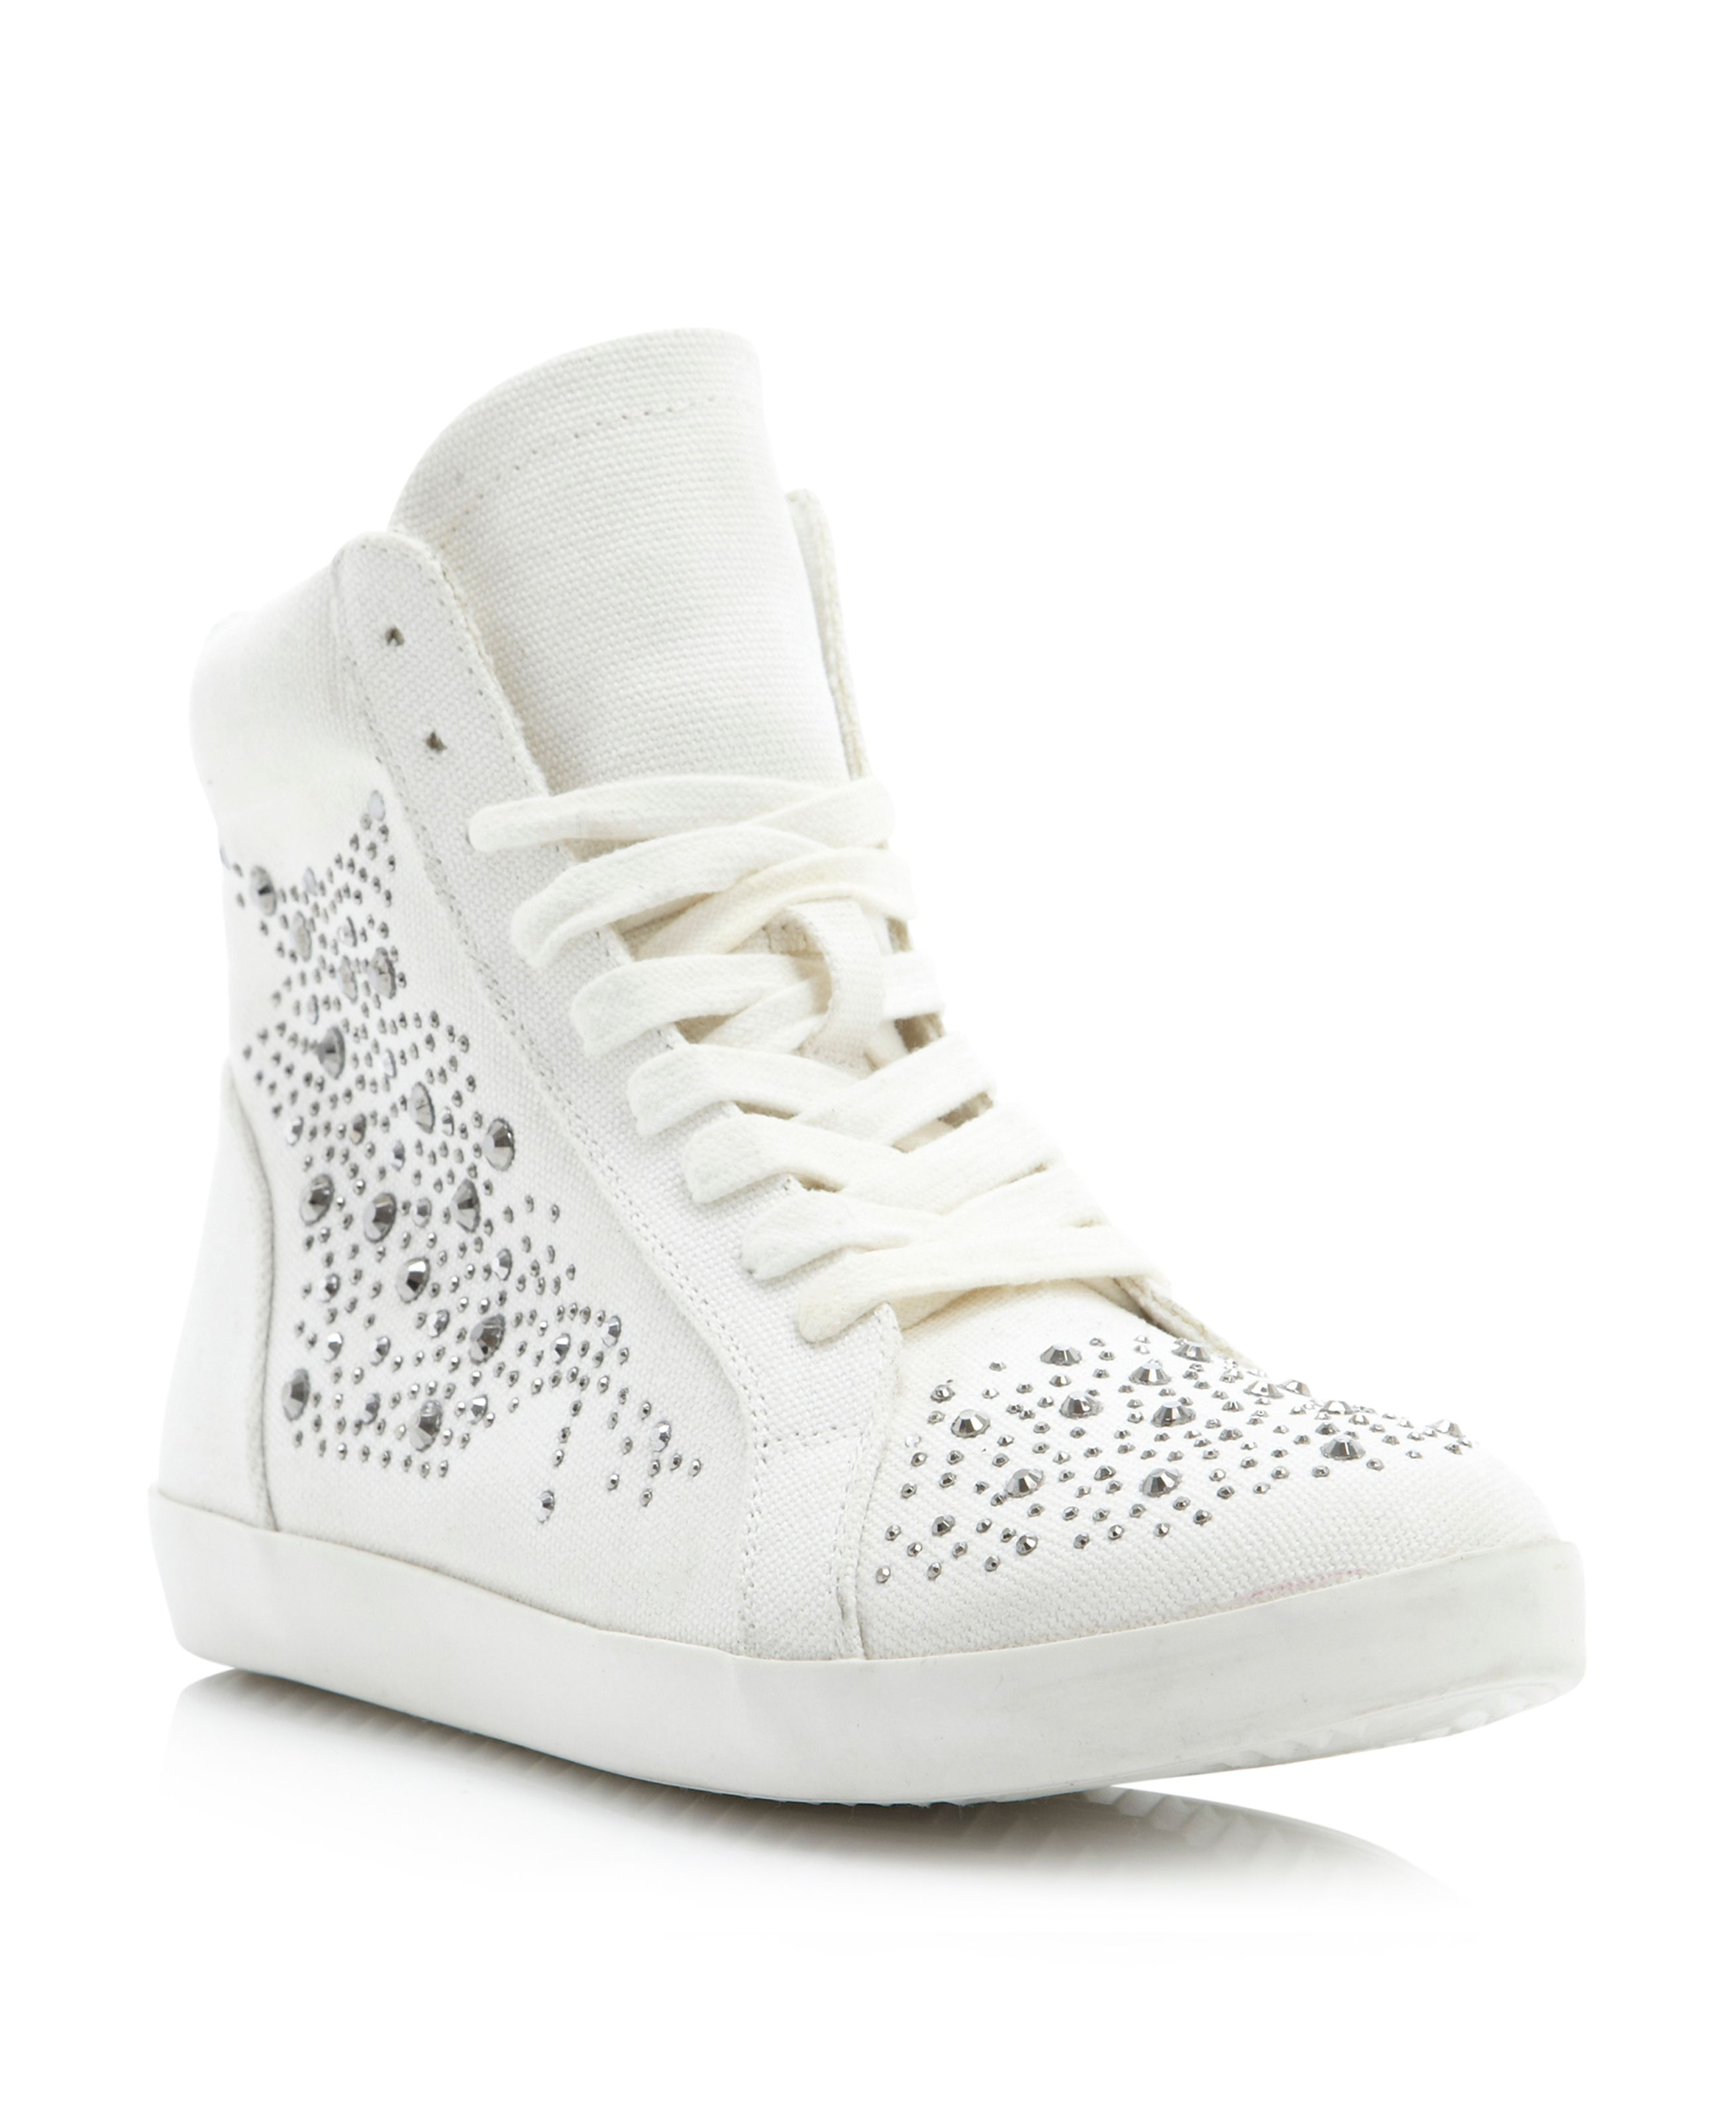 Lavo embellished high top trainer shoes